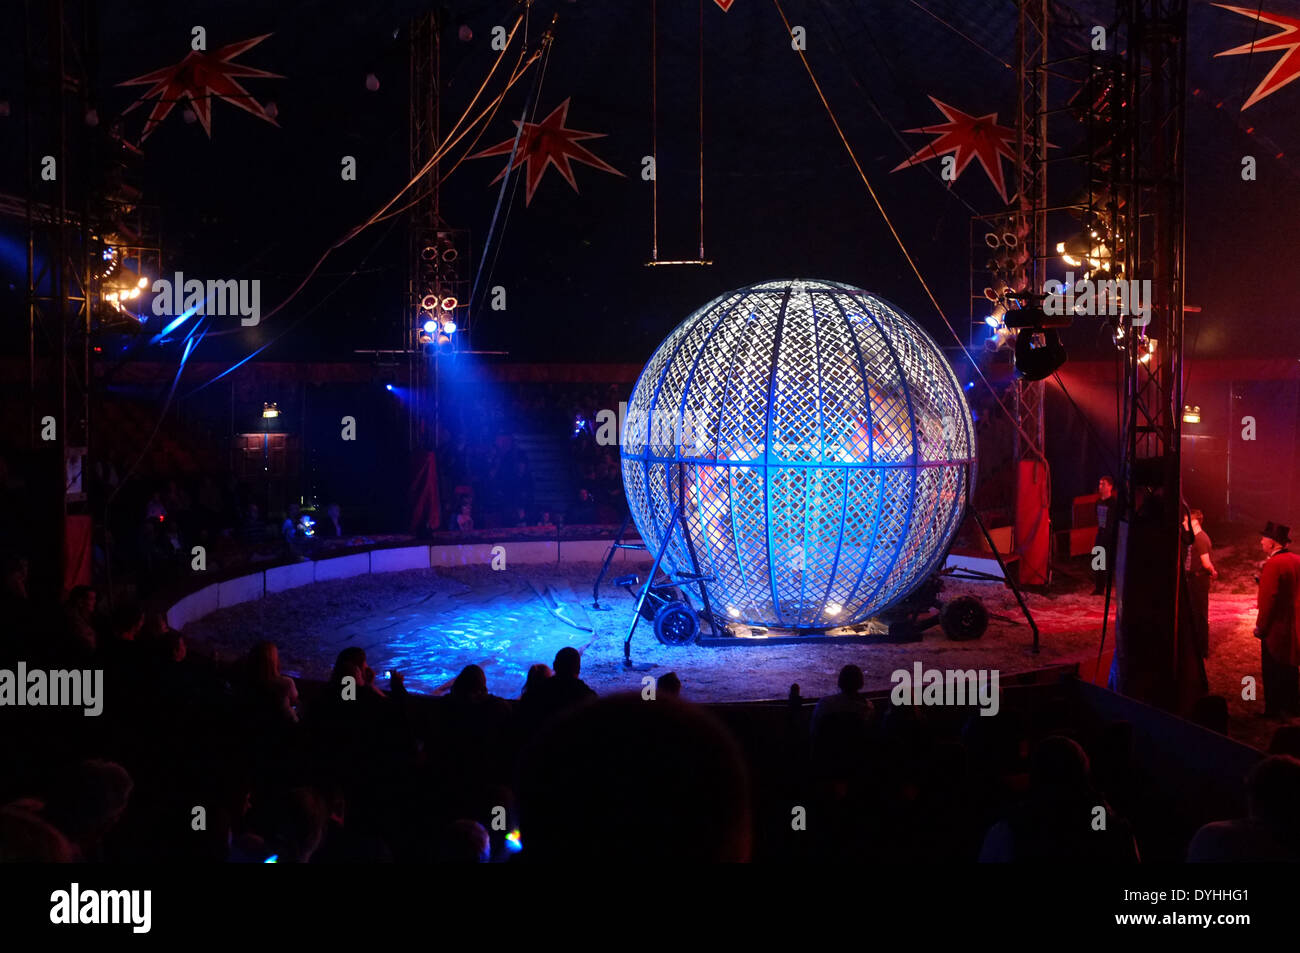 Two motorbikes inside a steel cage during a circus show performing loops inside the cage. The circus was travelling through Bannockburn in Scotland - Stock Image